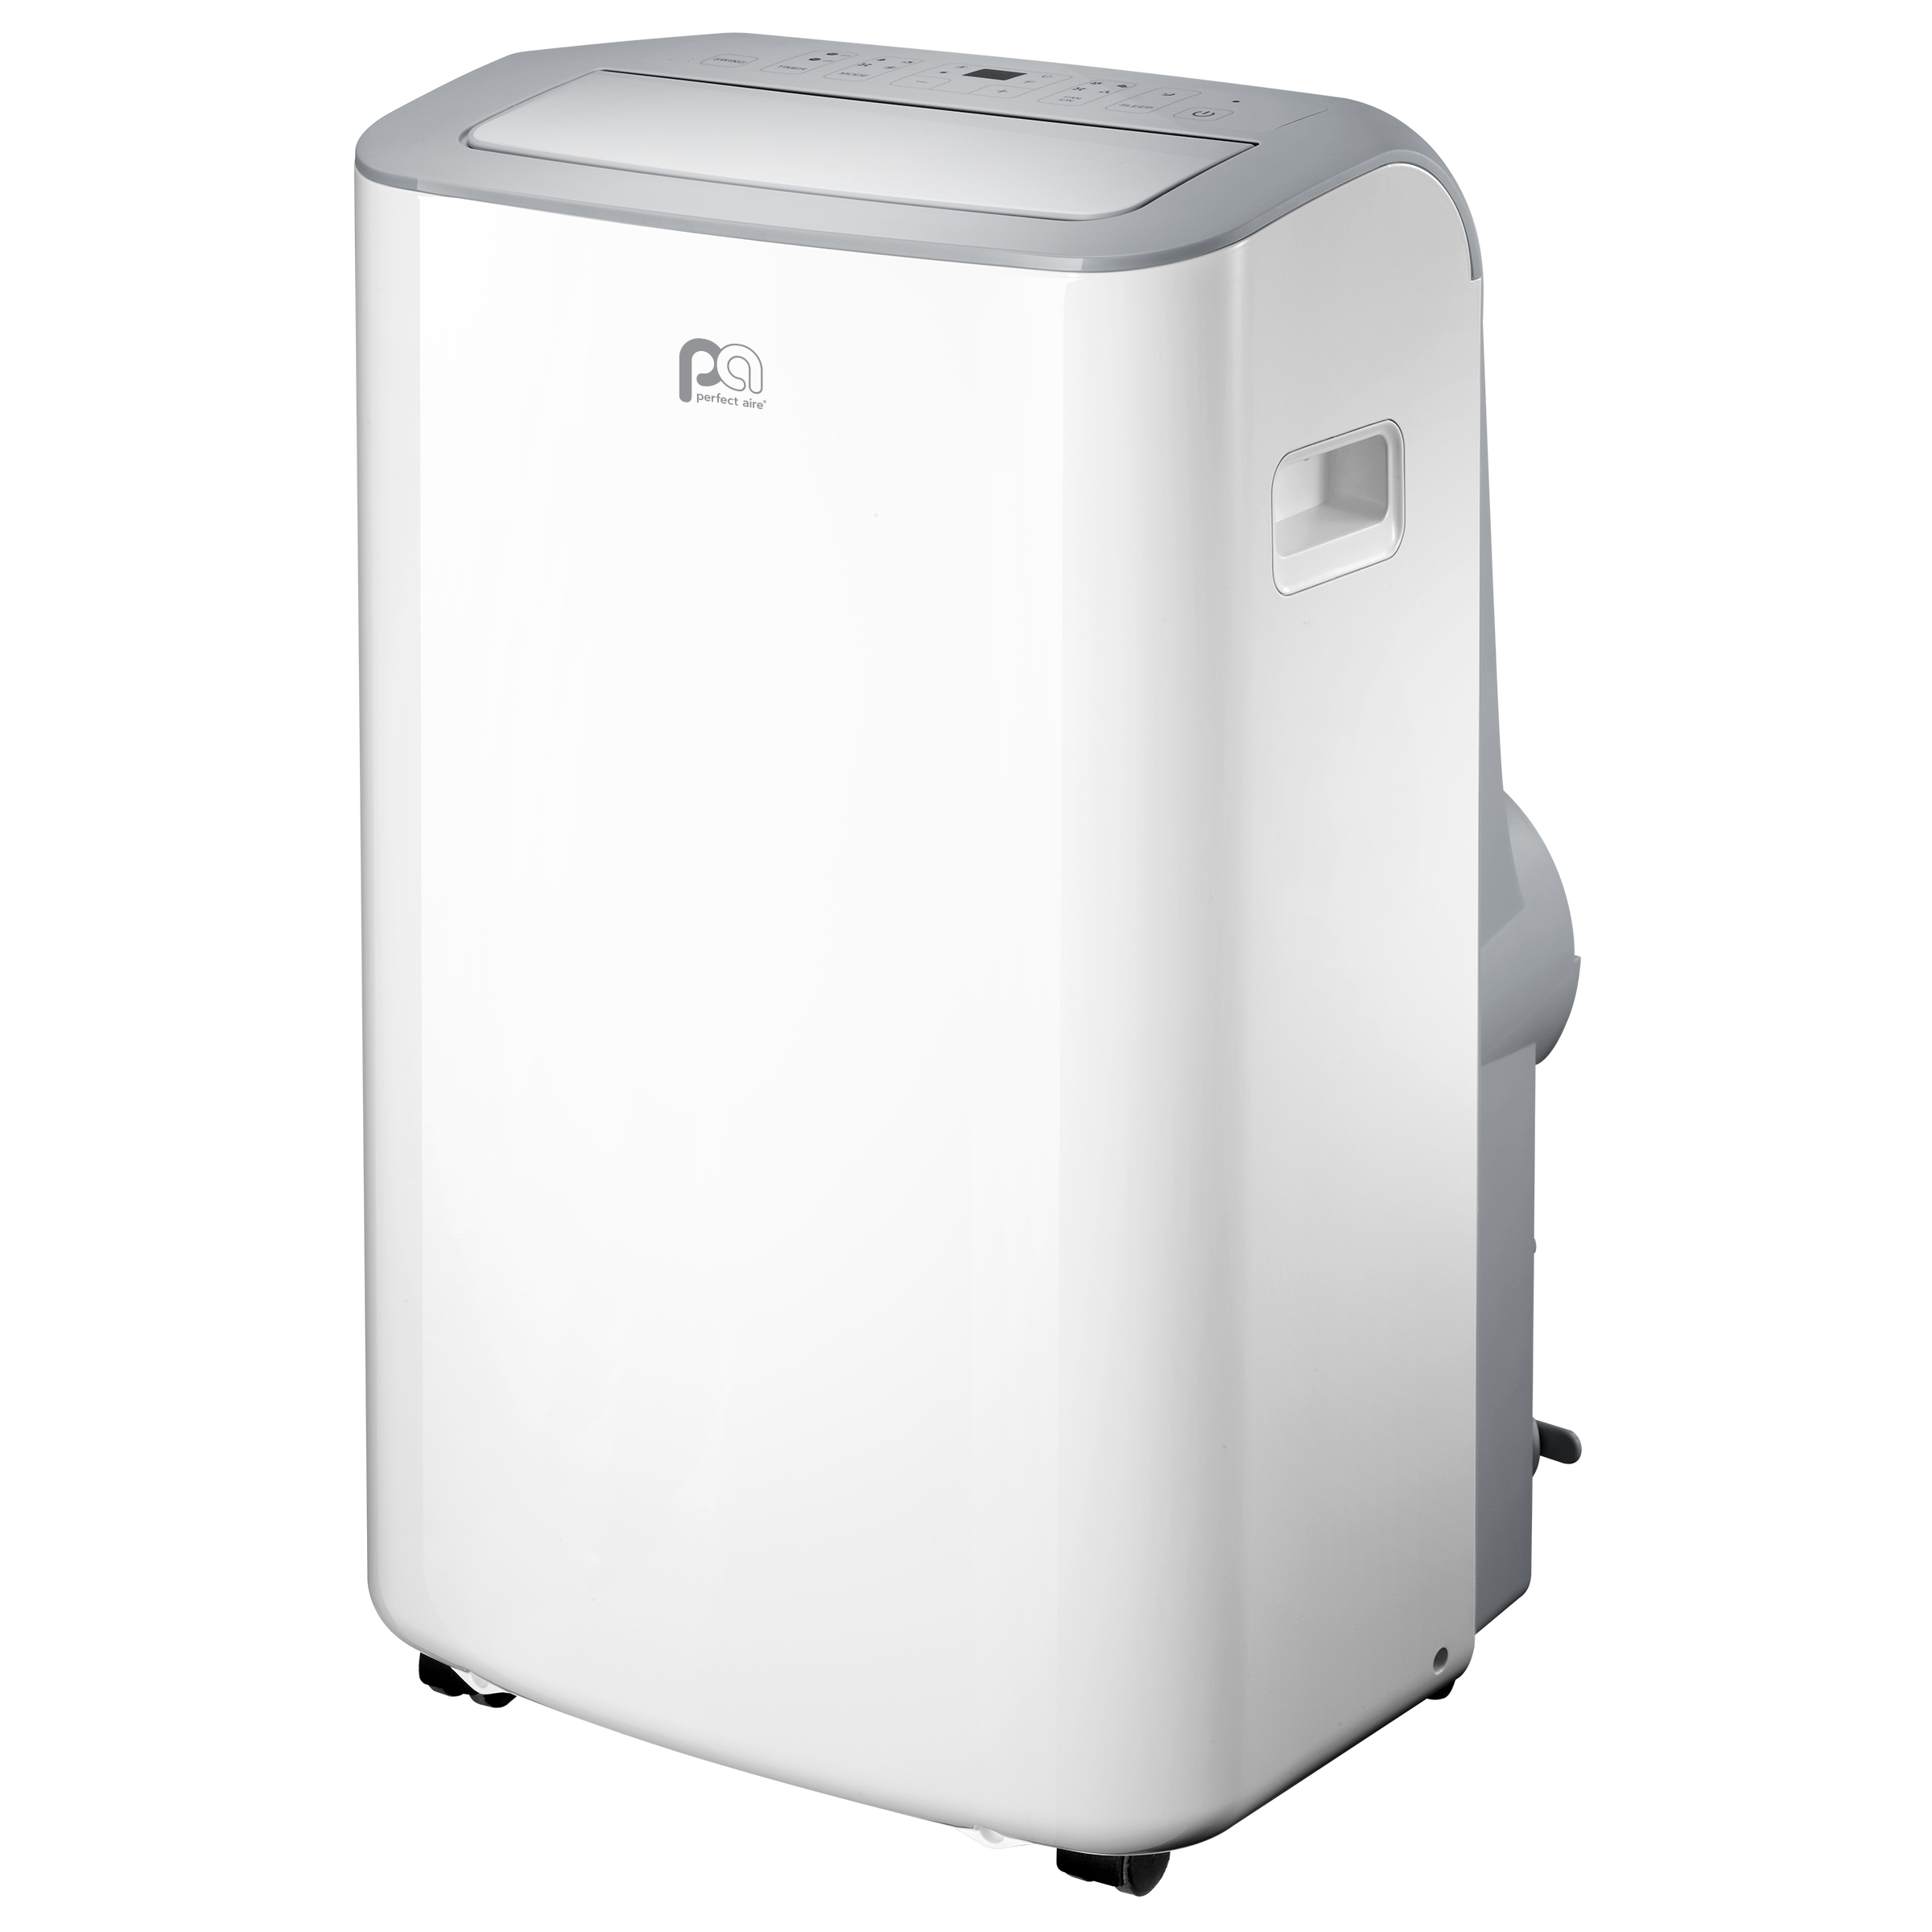 Portable Air Conditioner 12000 Btu 12 000 Btu Portable Air Conditioner With Heat Perfect Aire